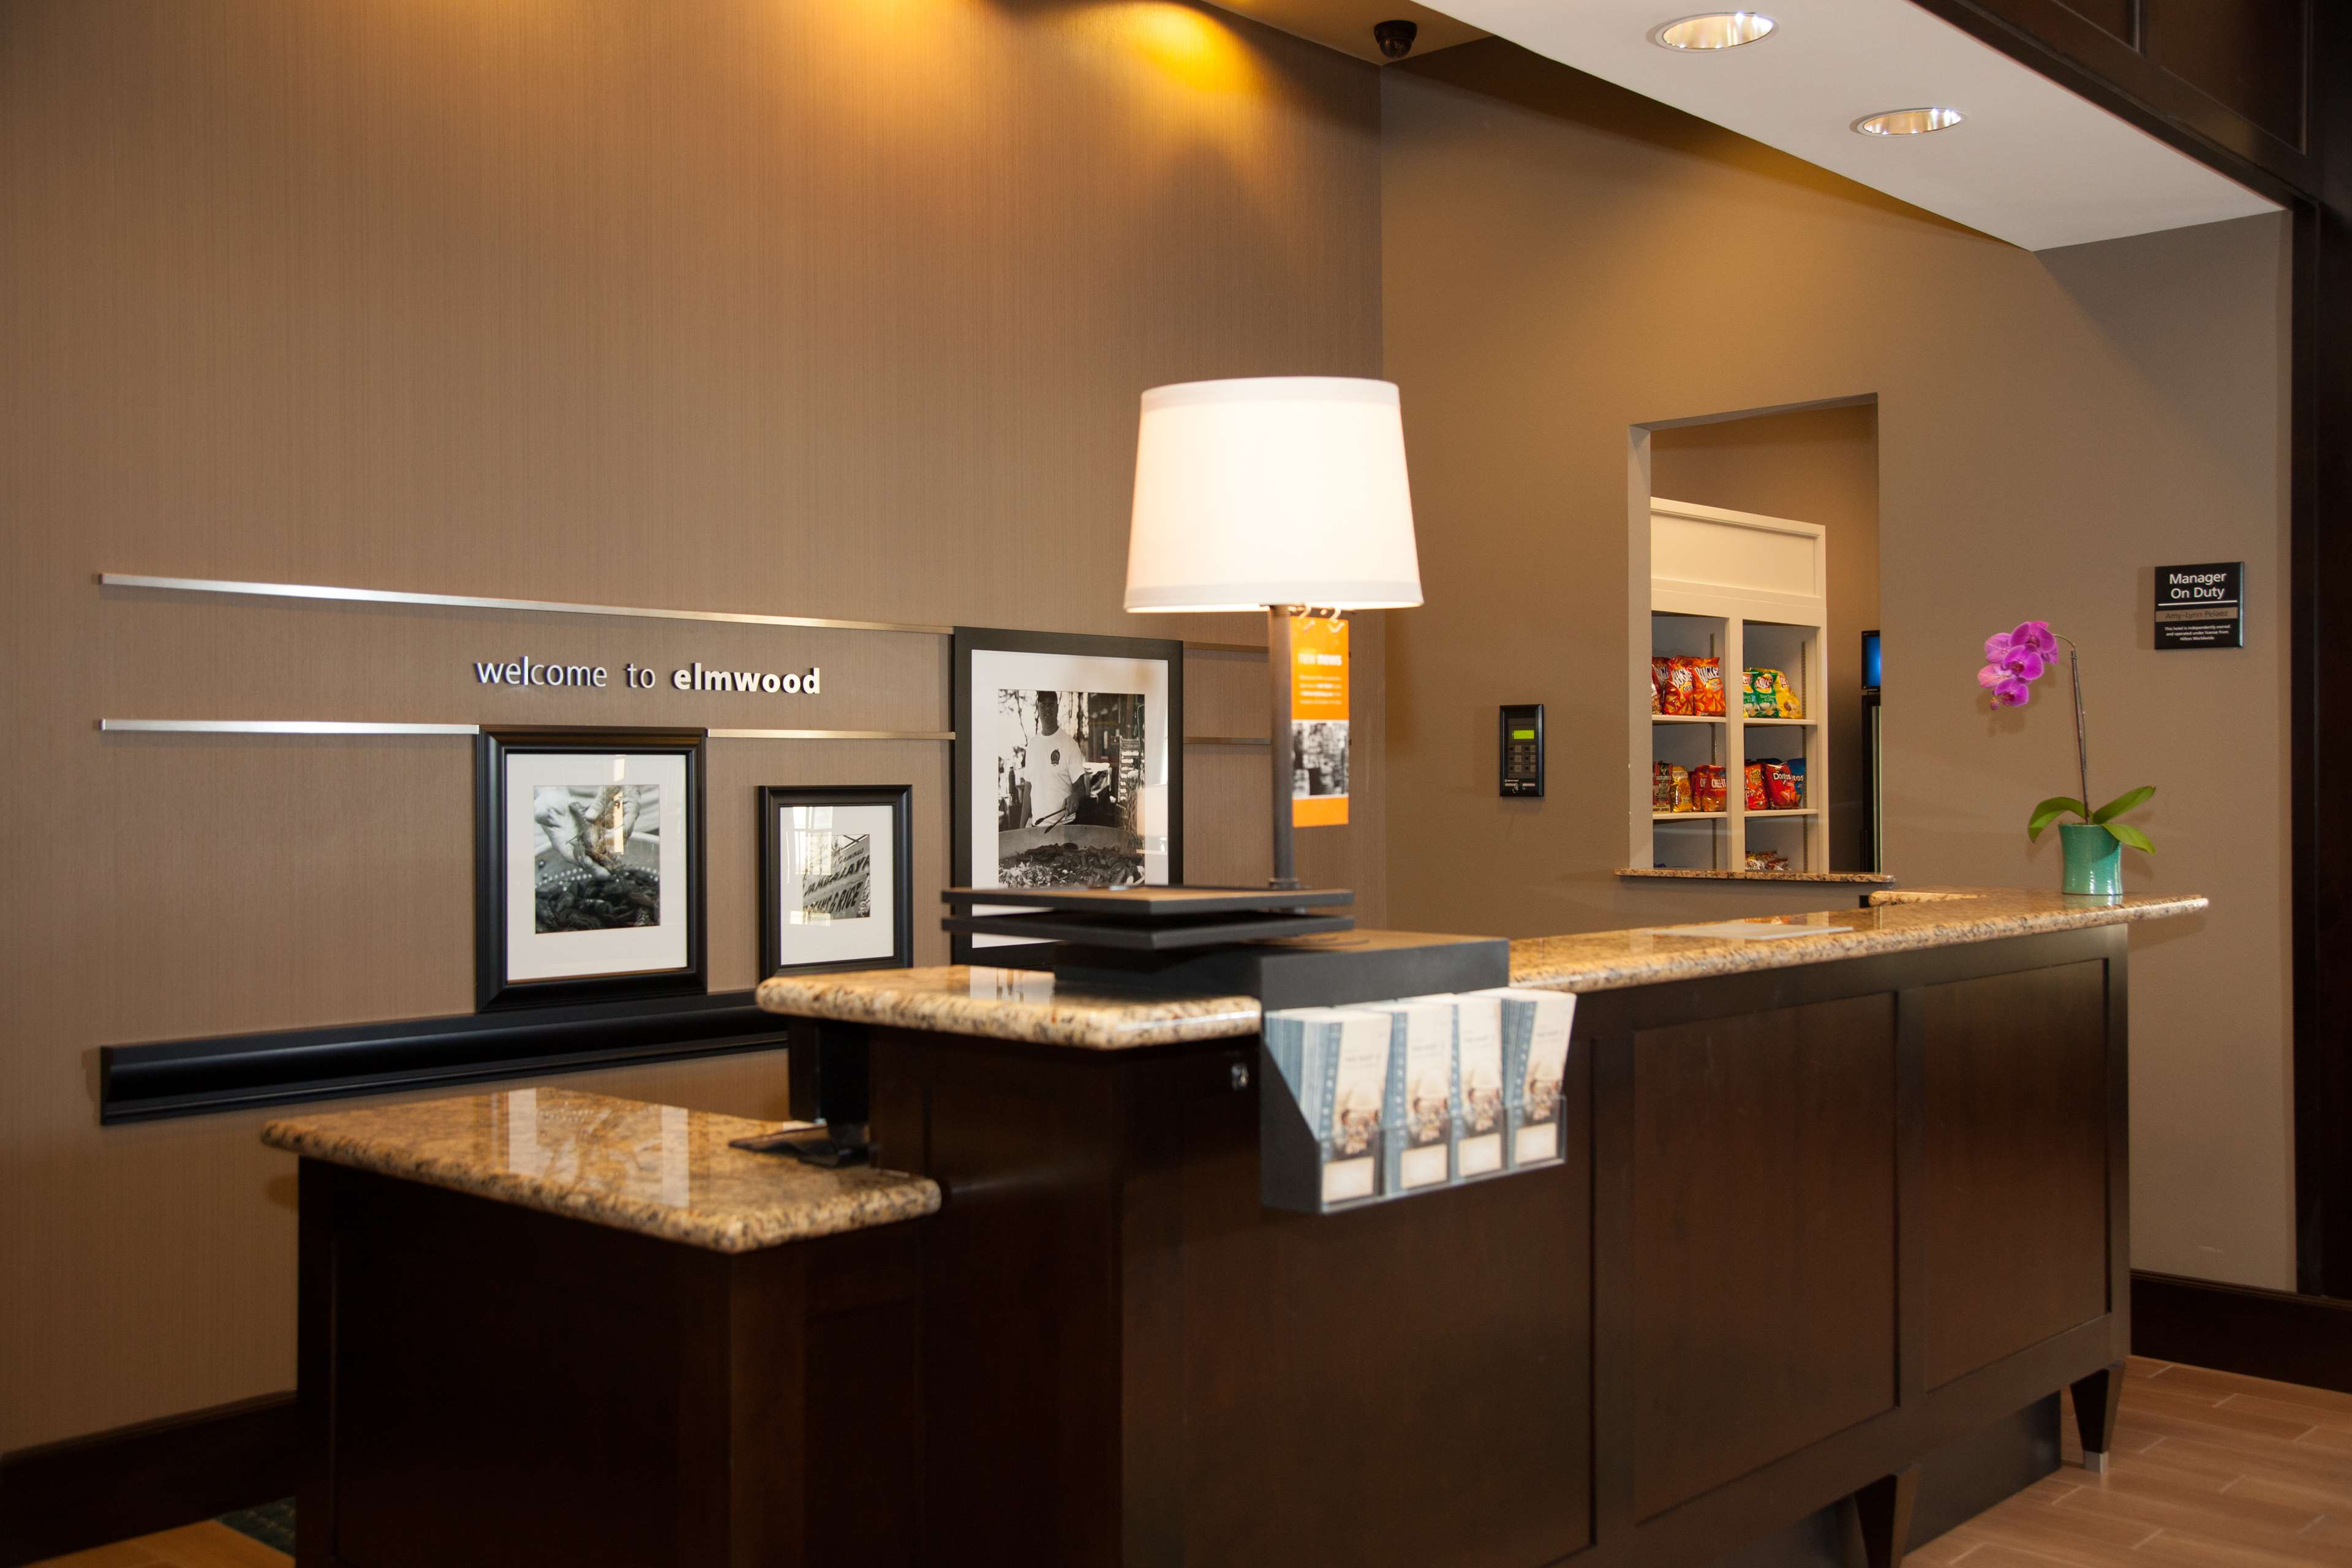 Hampton Inn & Suites New Orleans-Elmwood/Clearview Parkway Area image 5